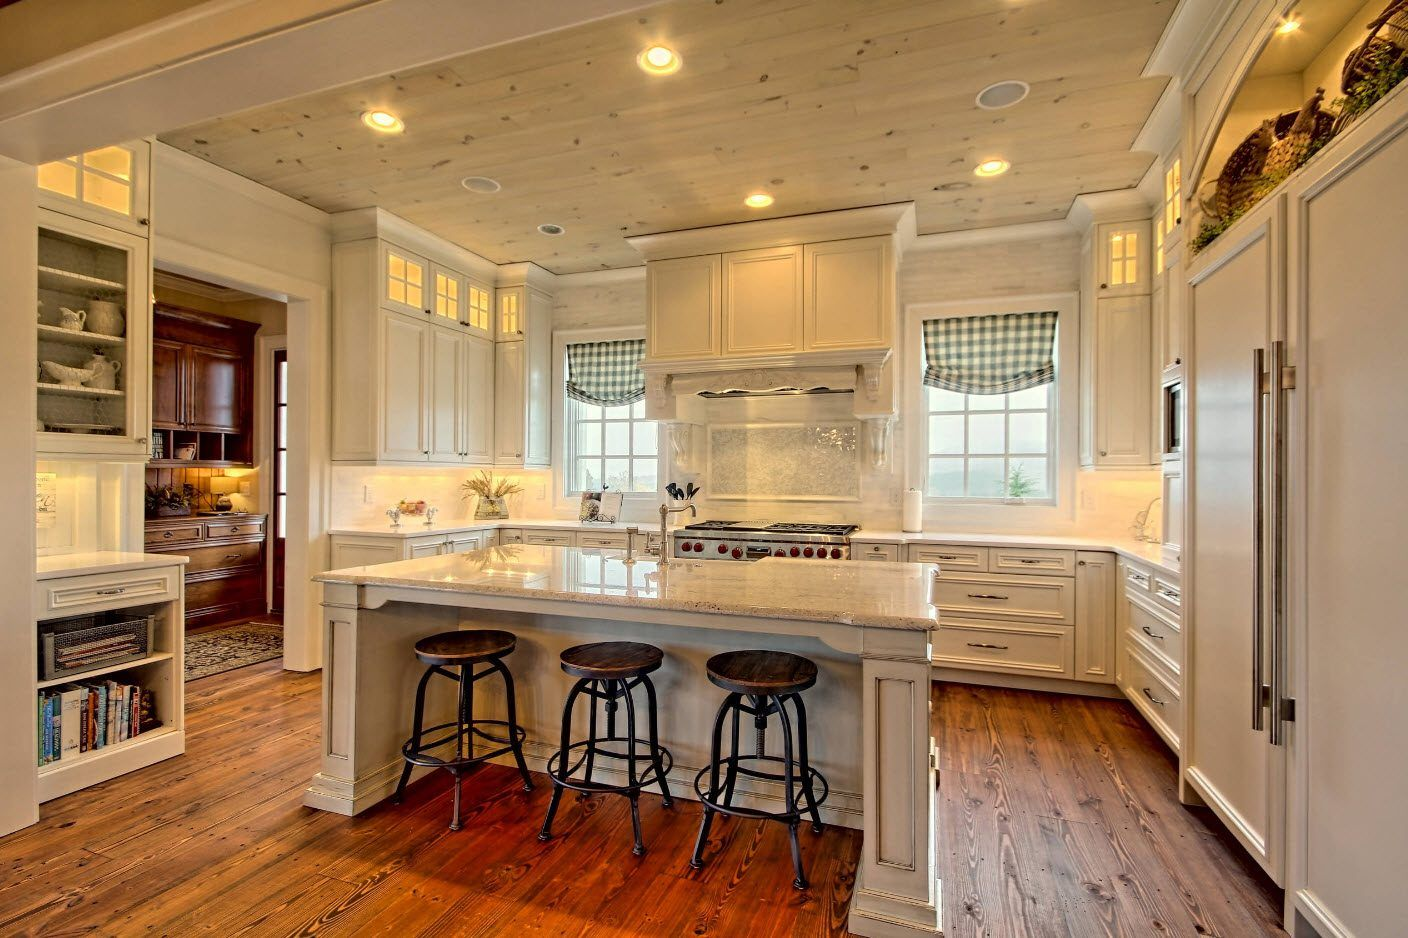 Classic design of the Classic kitchen in white with natural wooden floor